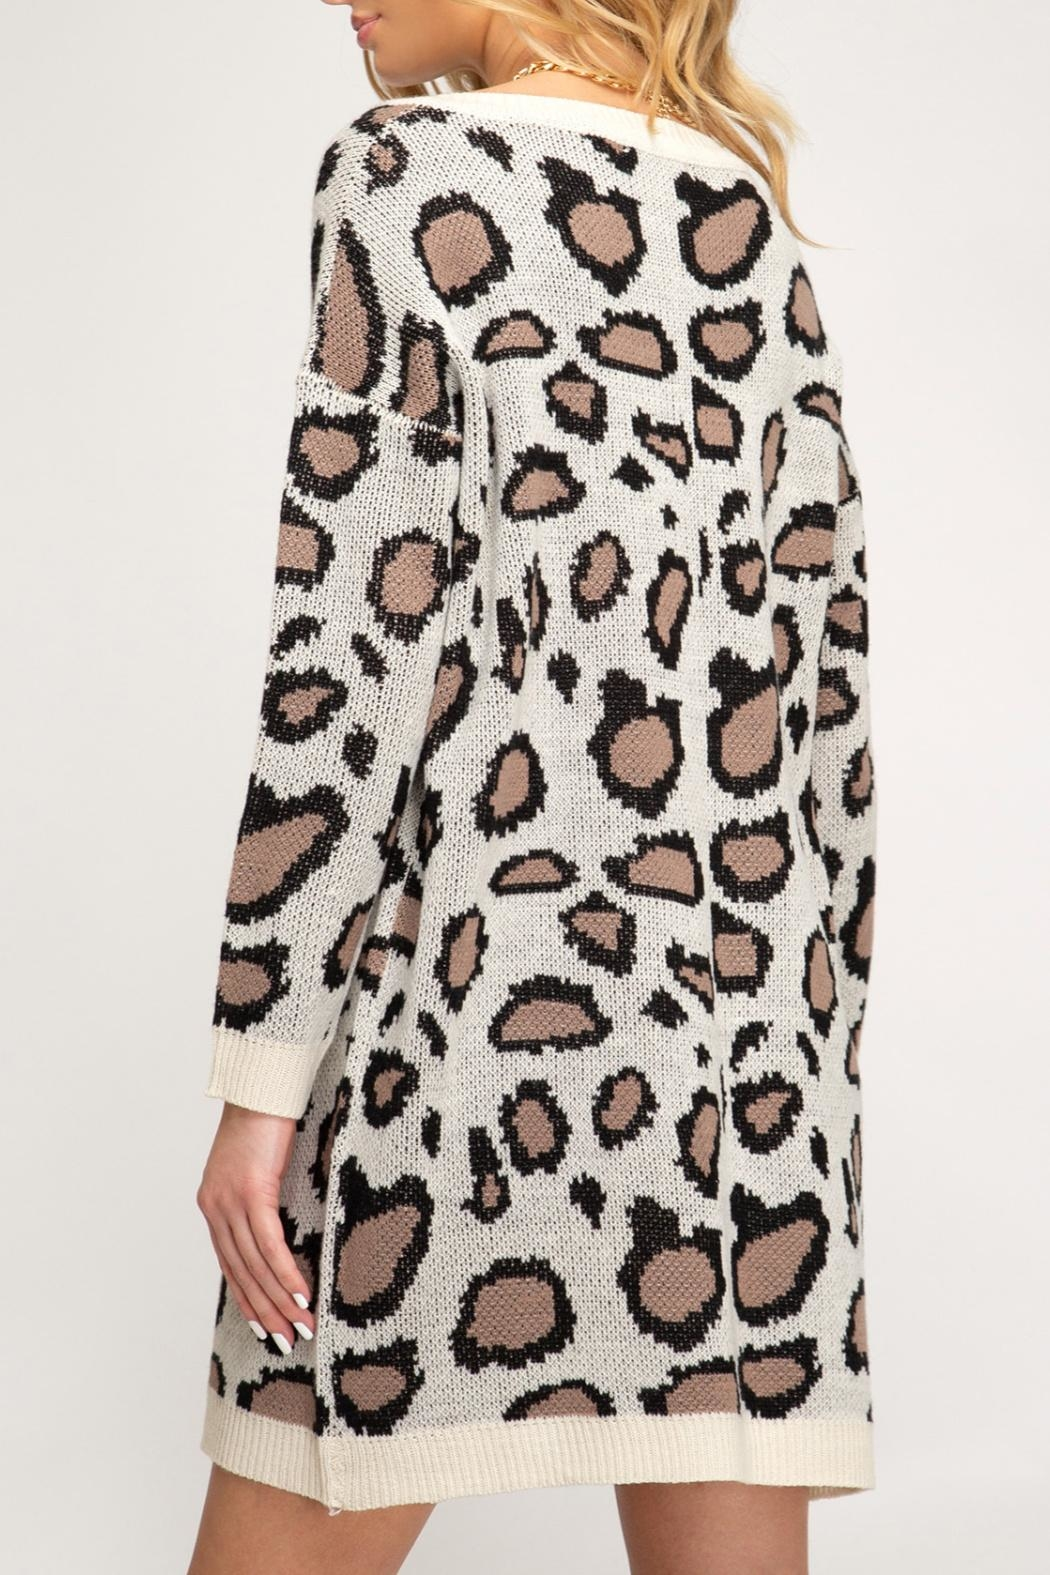 She + Sky Leopard Print Sweater - Side Cropped Image